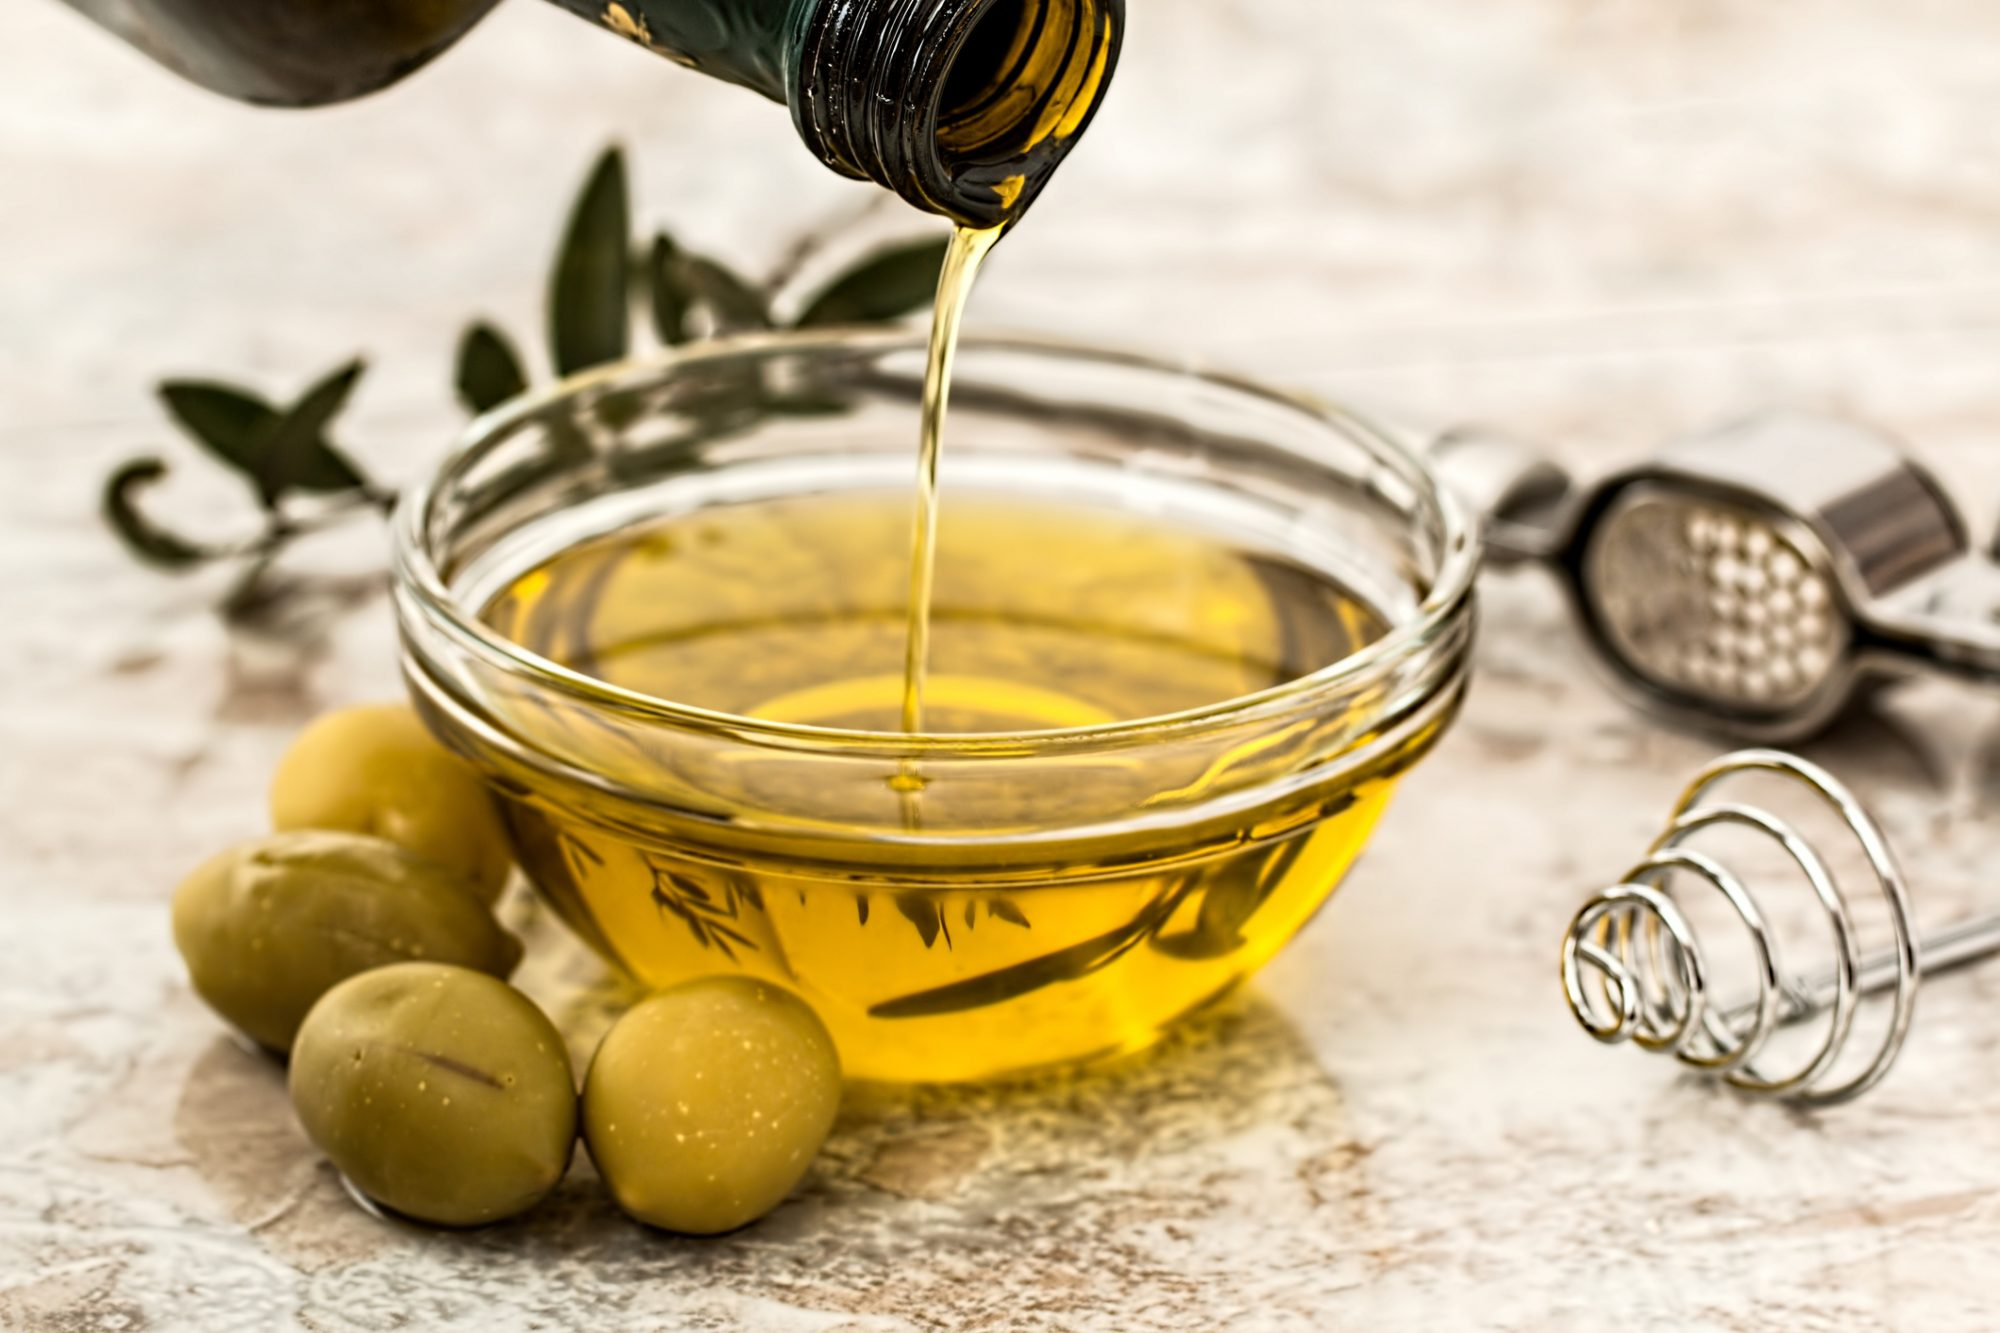 More Regulations May Be Coming to the Olive Oil Industry, According to a New Petition